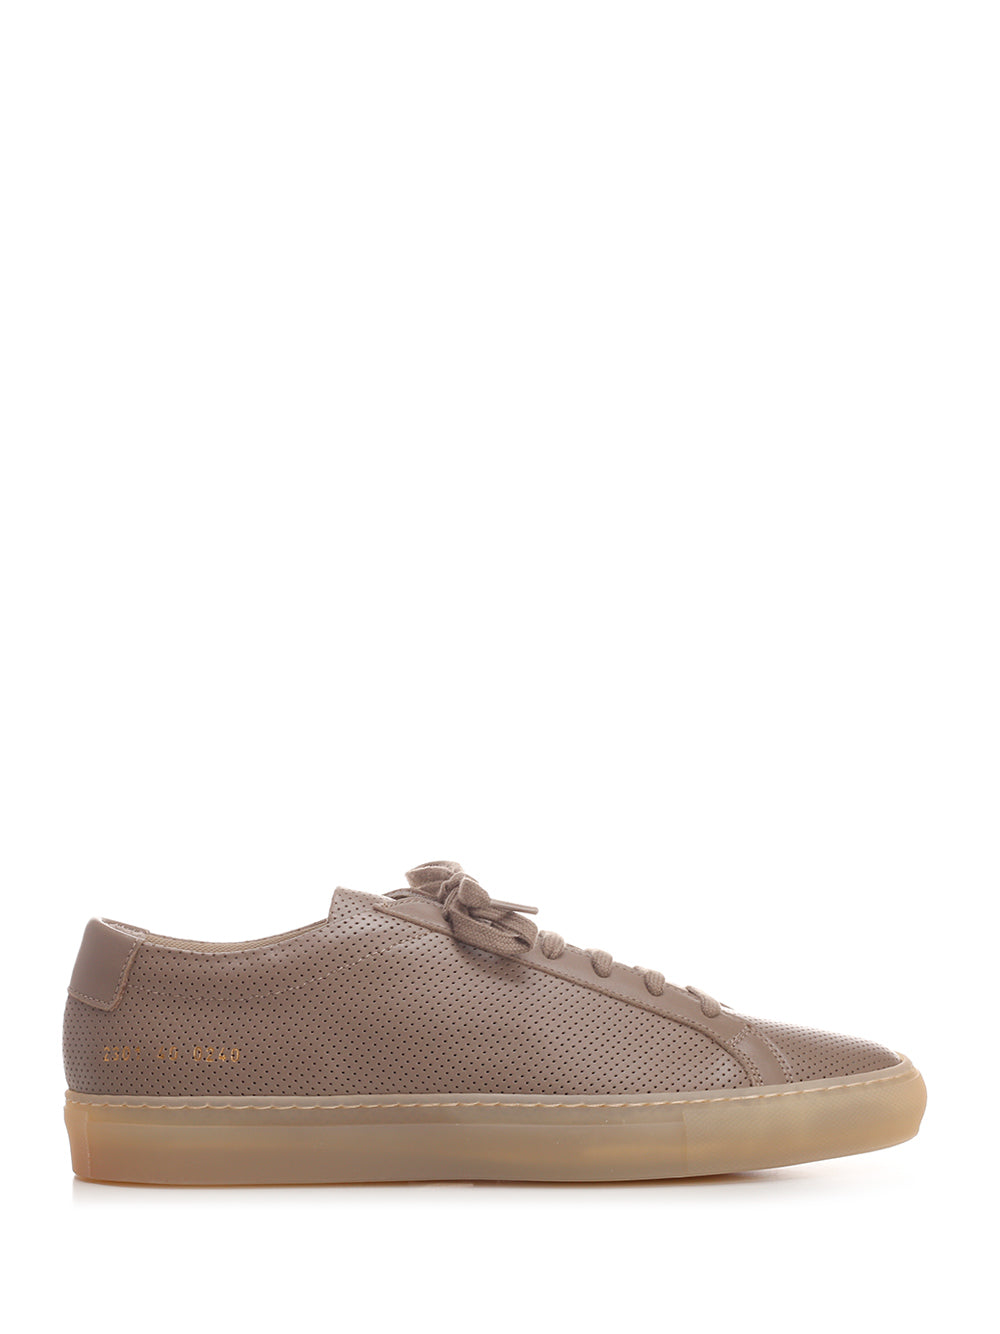 Common Projects Leathers COMMON PROJECTS ACHILLES LOW PERFORATED SNEAKERS